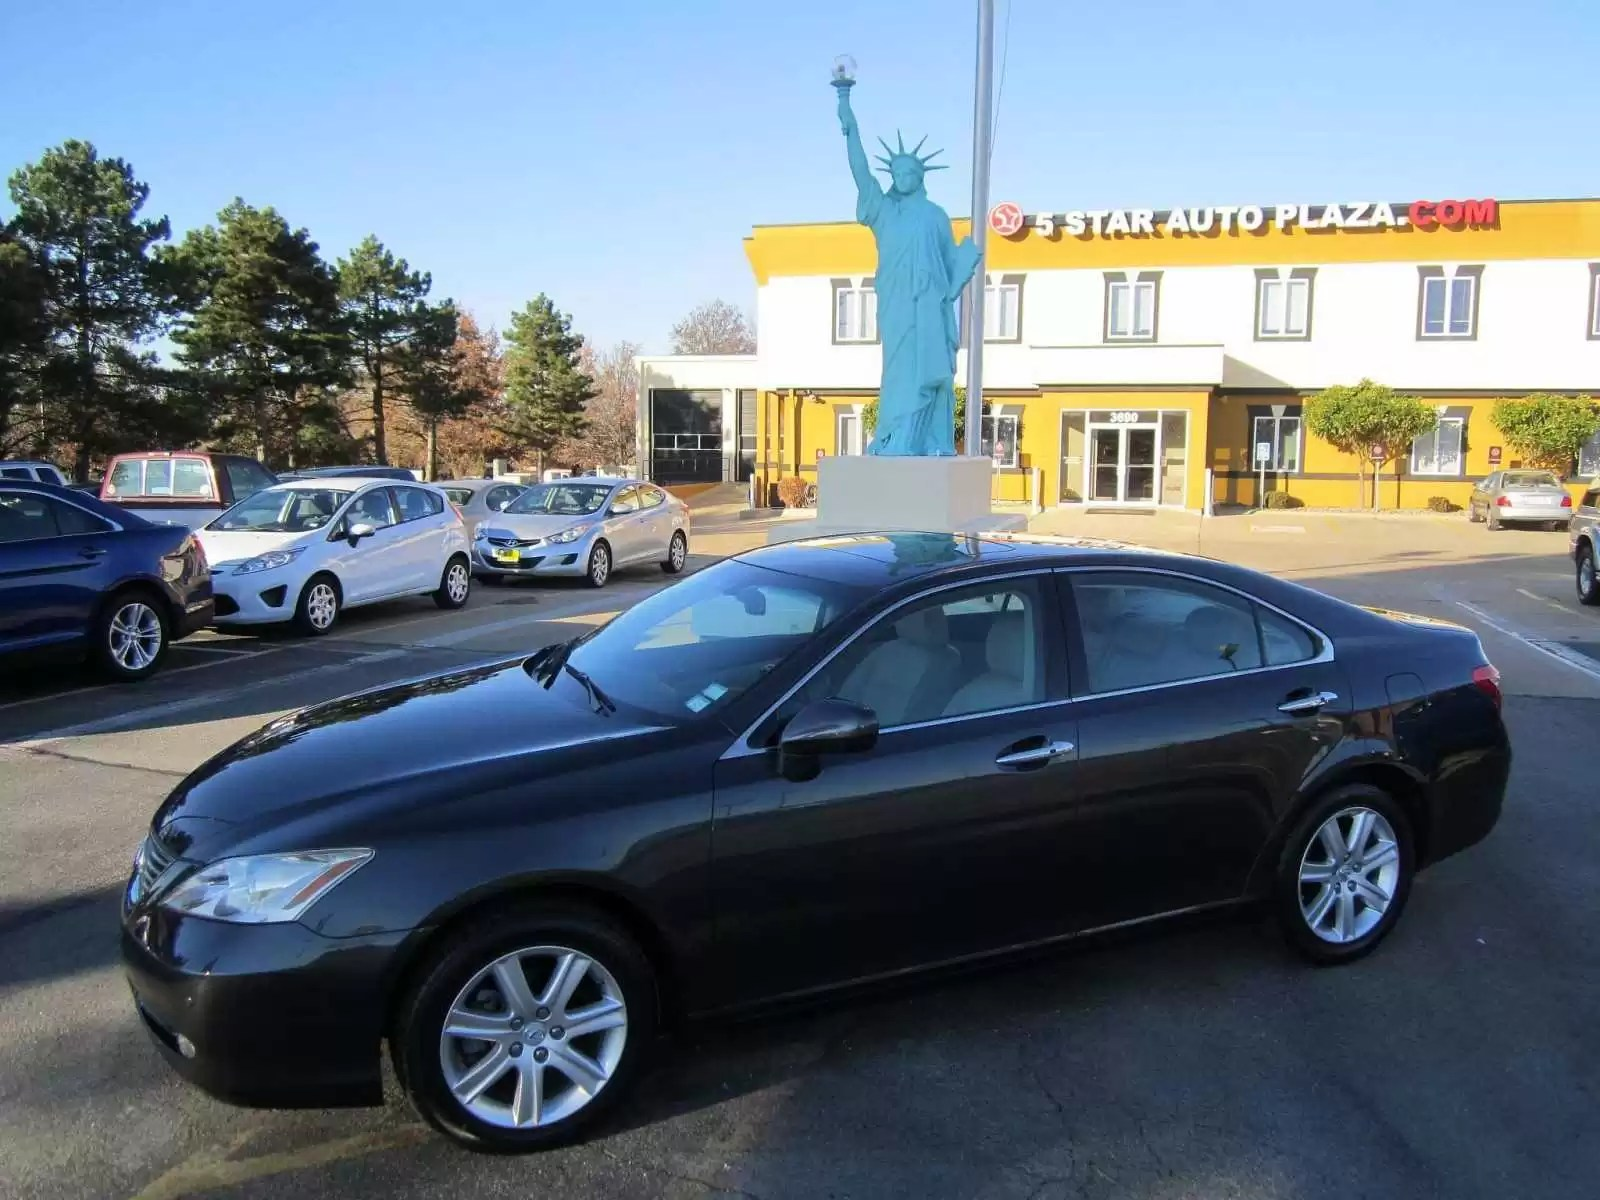 St Charles Pre Owned Lexus Cars for Sale